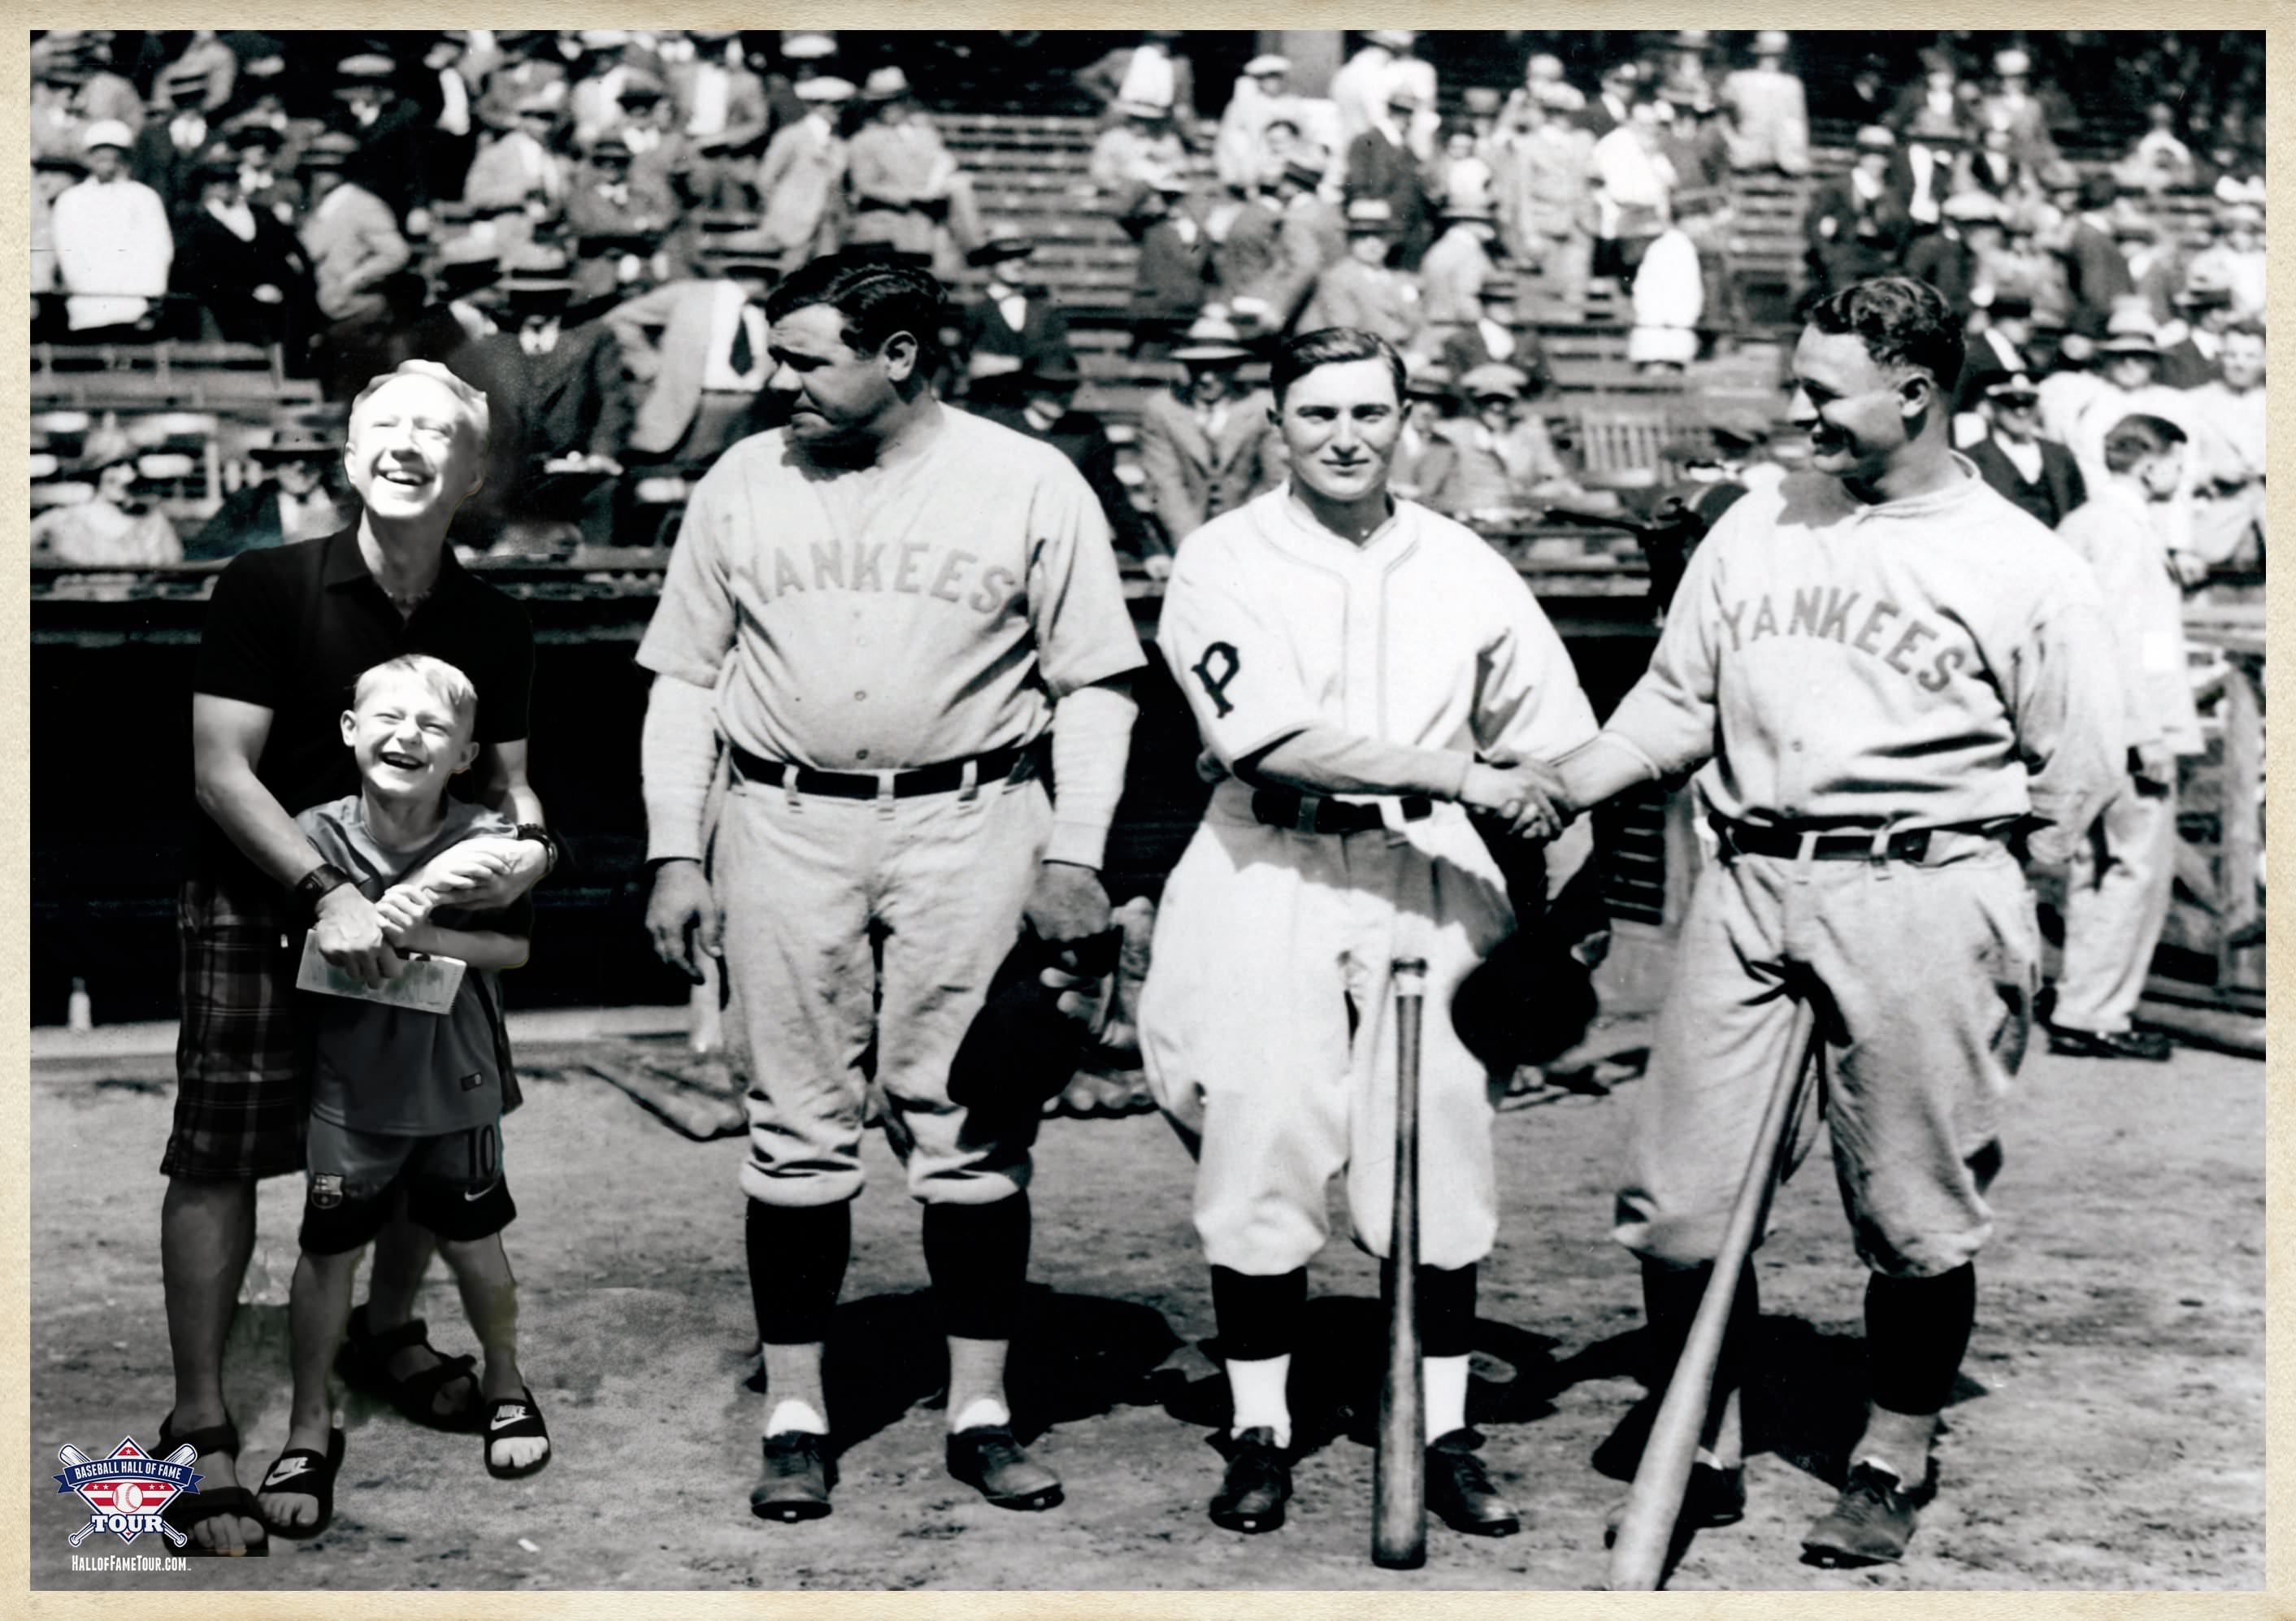 Sean Leary and his son, Jackson, meet Babe Ruth and other sluggers in an interactive photo exhibit at the Baseball Hall of Fame show in Davenport.